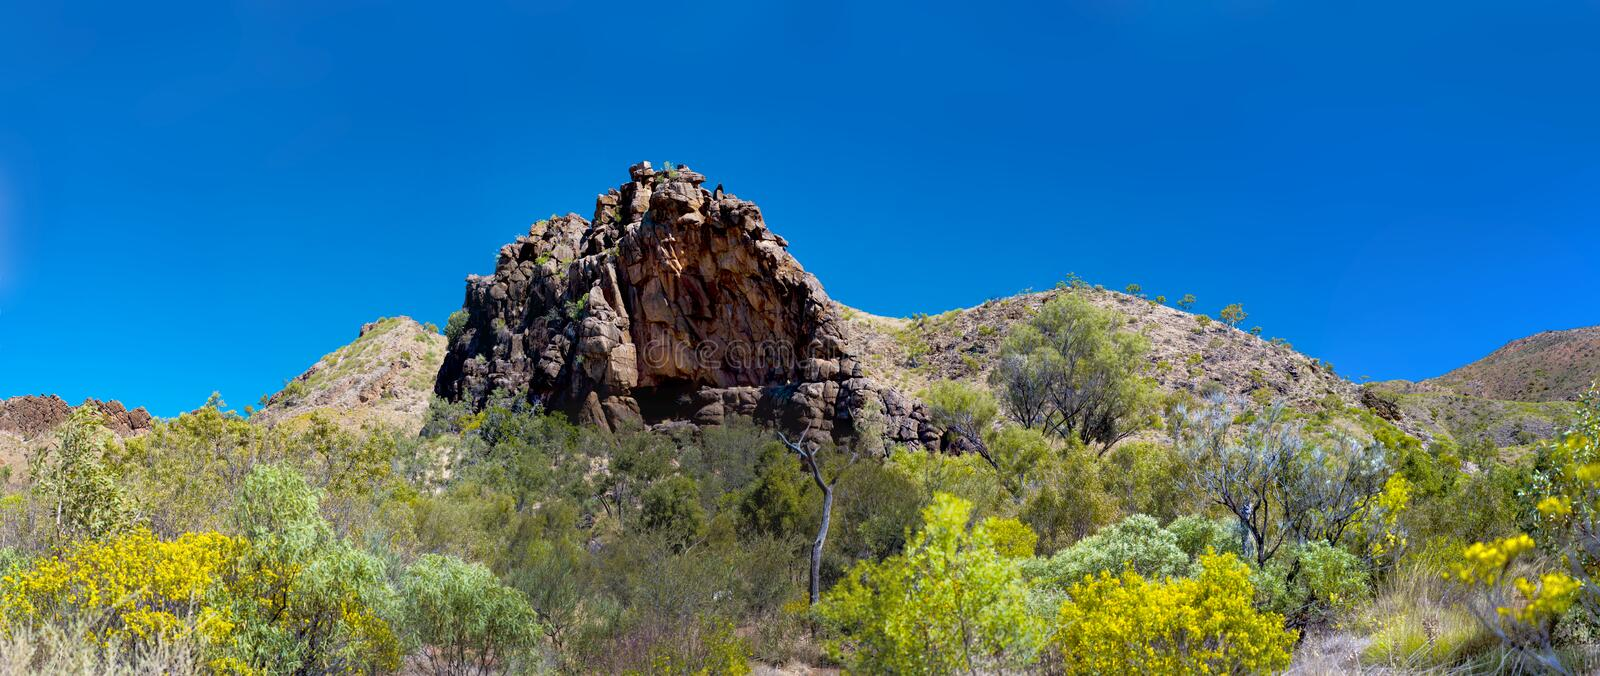 Corroboree Rock. Is a dark grey column of dolomite an hour's drive east of Alice Springs. It is one of many sites in the MacDonnell Ranges that is of great stock photography